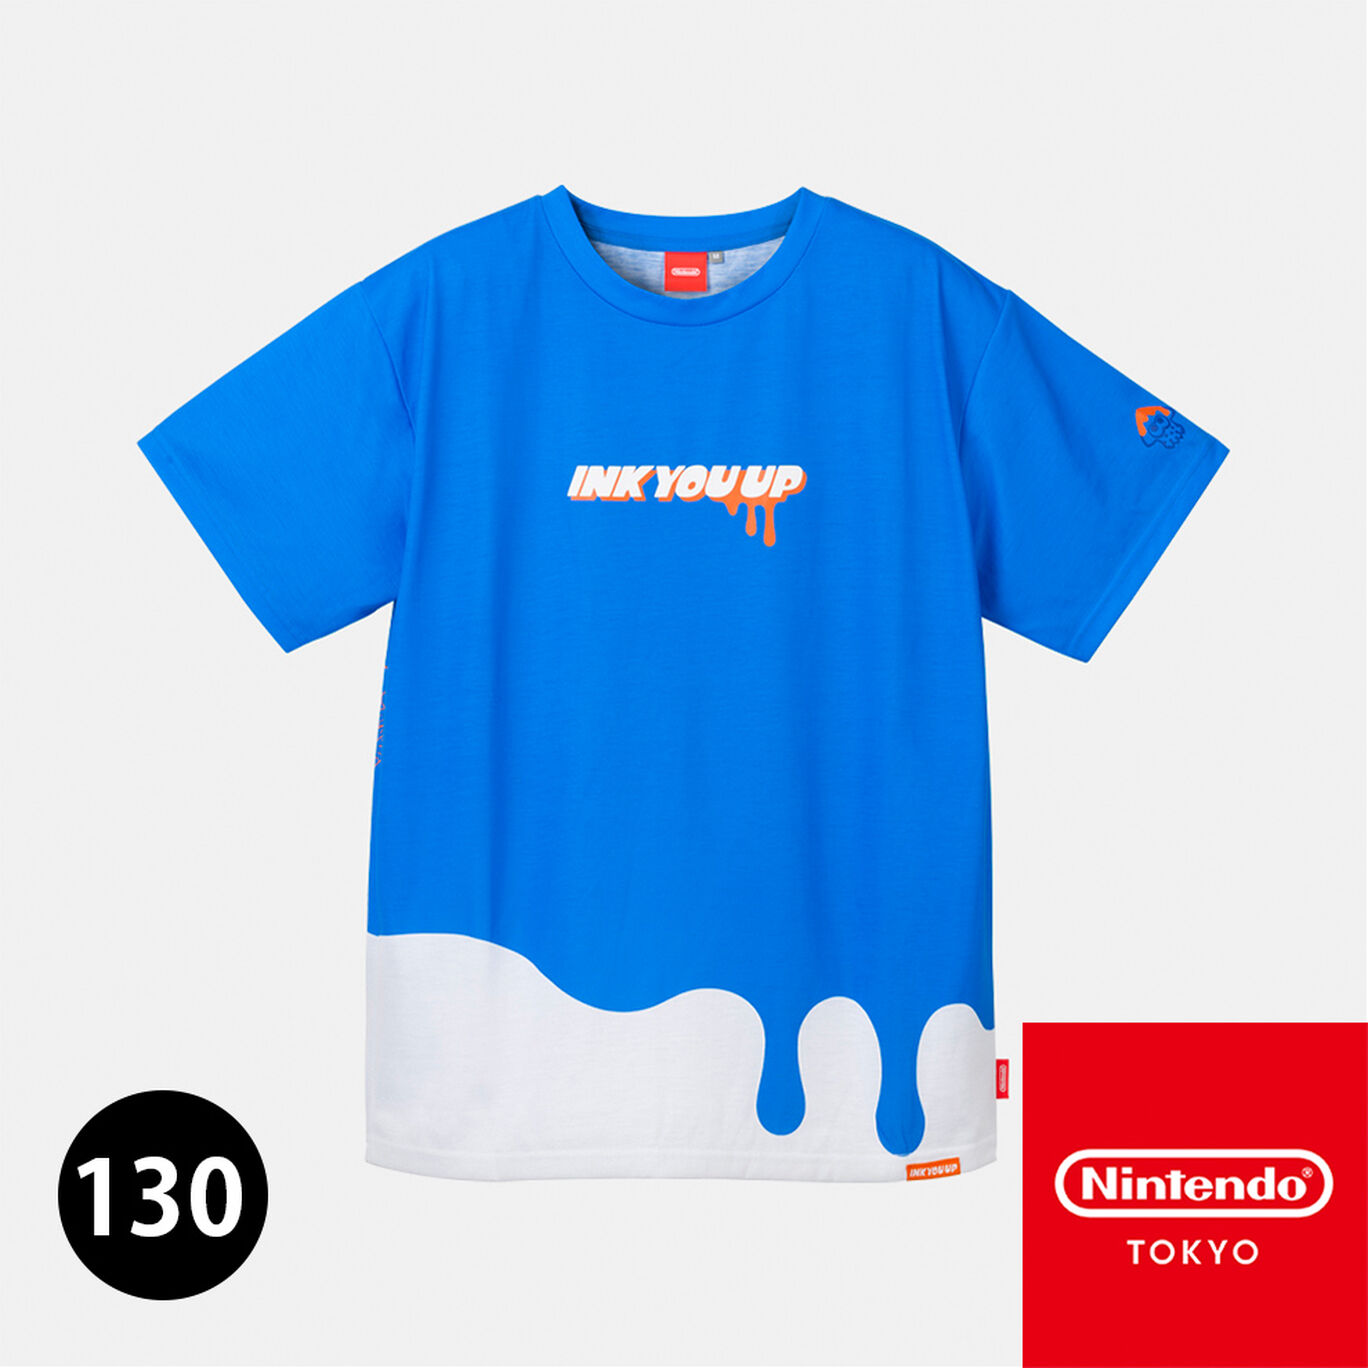 Tシャツ A 130 INK YOU UP【Nintendo TOKYO取り扱い商品】